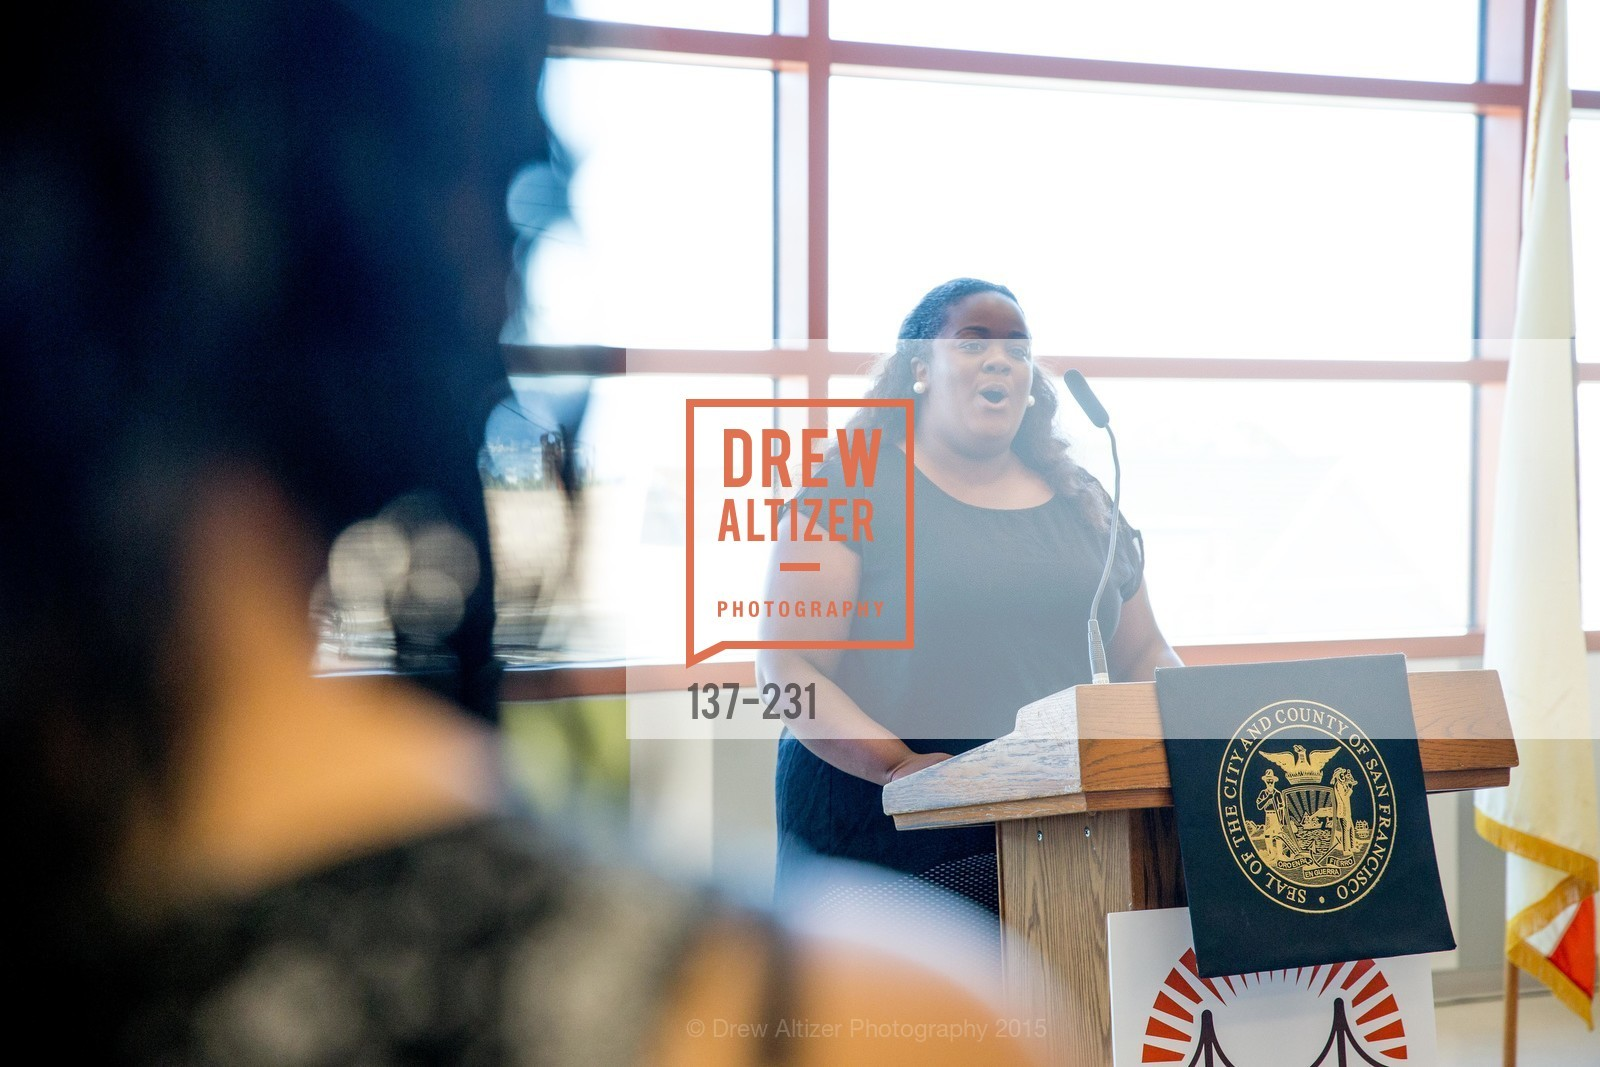 Extras, Willie L. Brown Middle School Ribbon Cutting Ceremony, August 13th, 2015, Photo,Drew Altizer, Drew Altizer Photography, full-service agency, private events, San Francisco photographer, photographer california